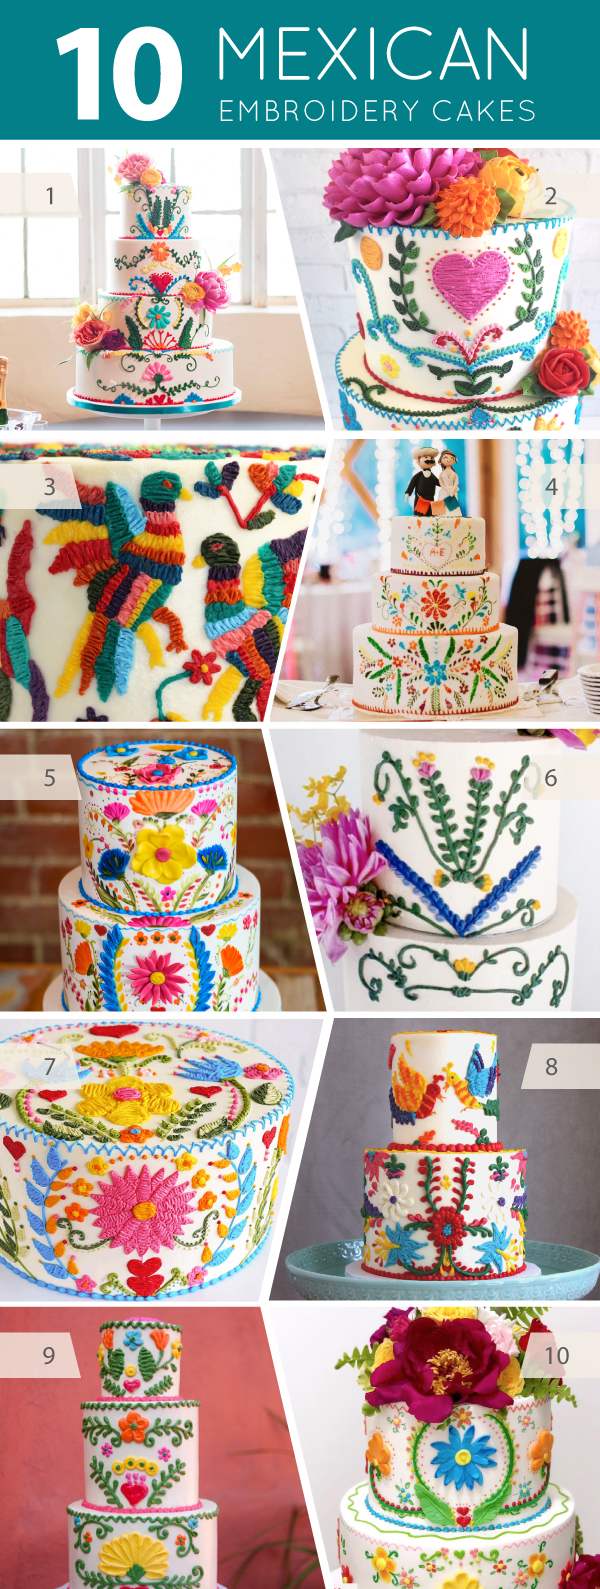 10 Mexican Embroidery Cakes   on TheCakeBlog.com